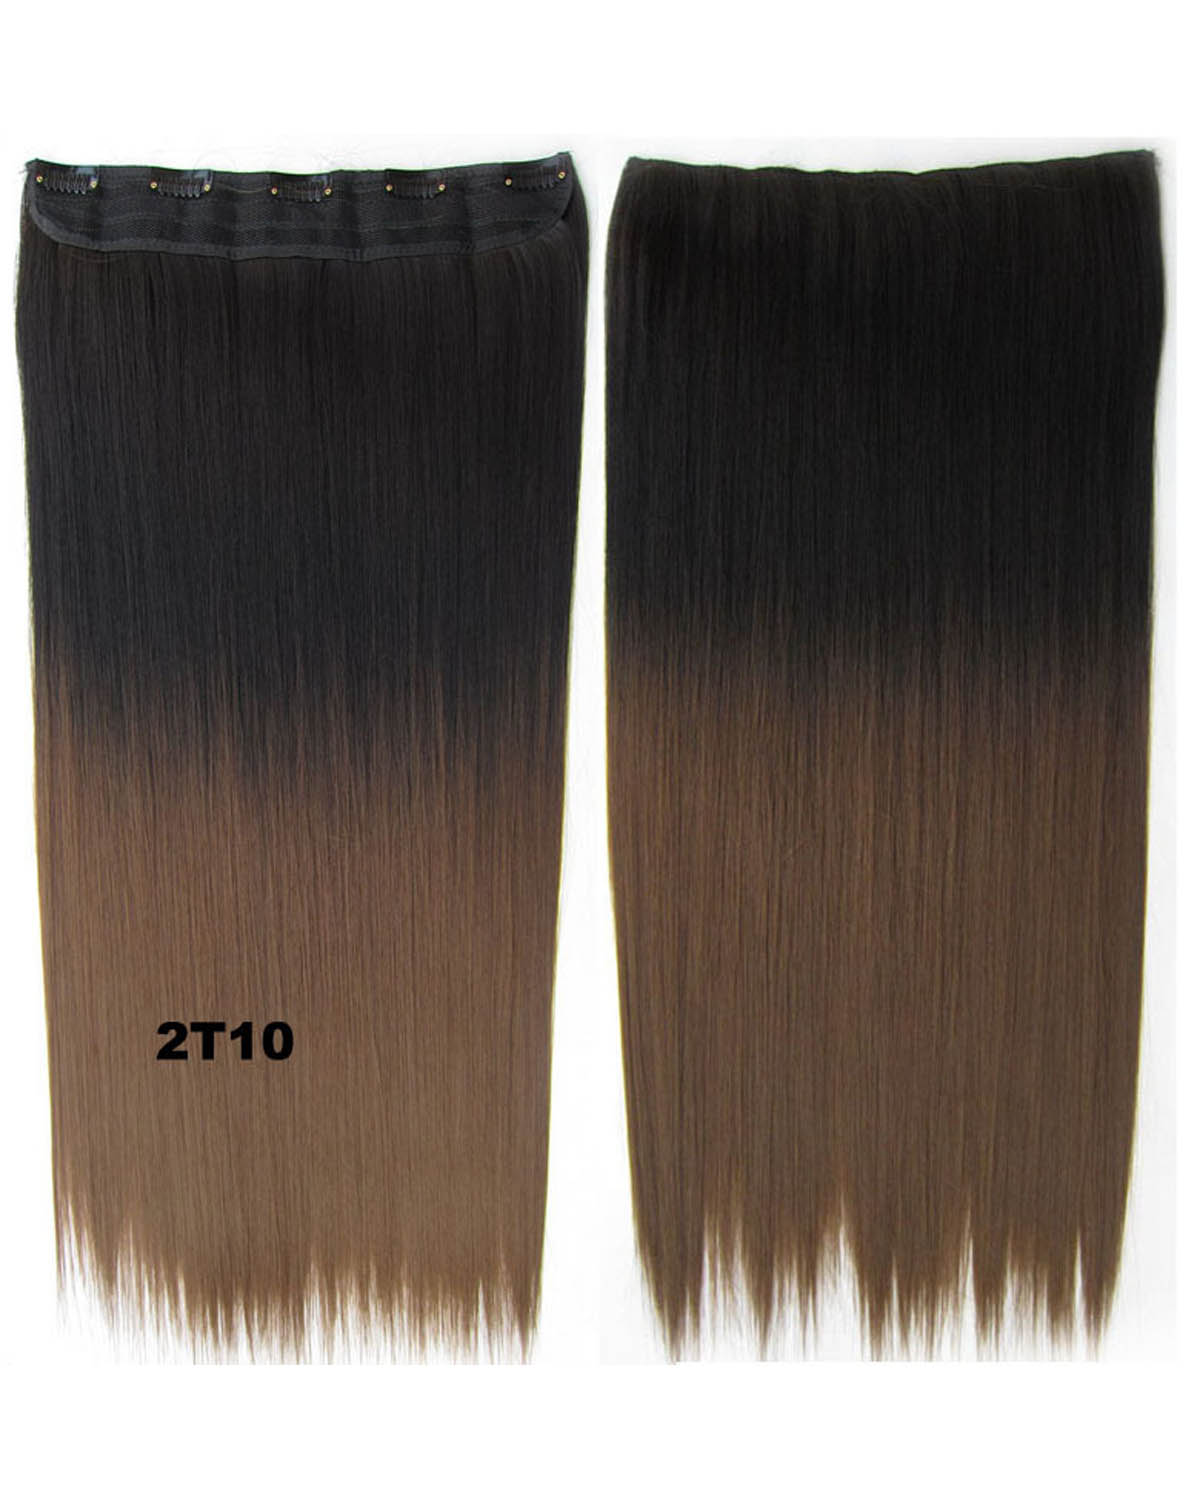 24 Inch Women Classic Body Wave Straight  Long One Piece 5 Clips Clip in Synthetic Hair Extension Two tone 2T10